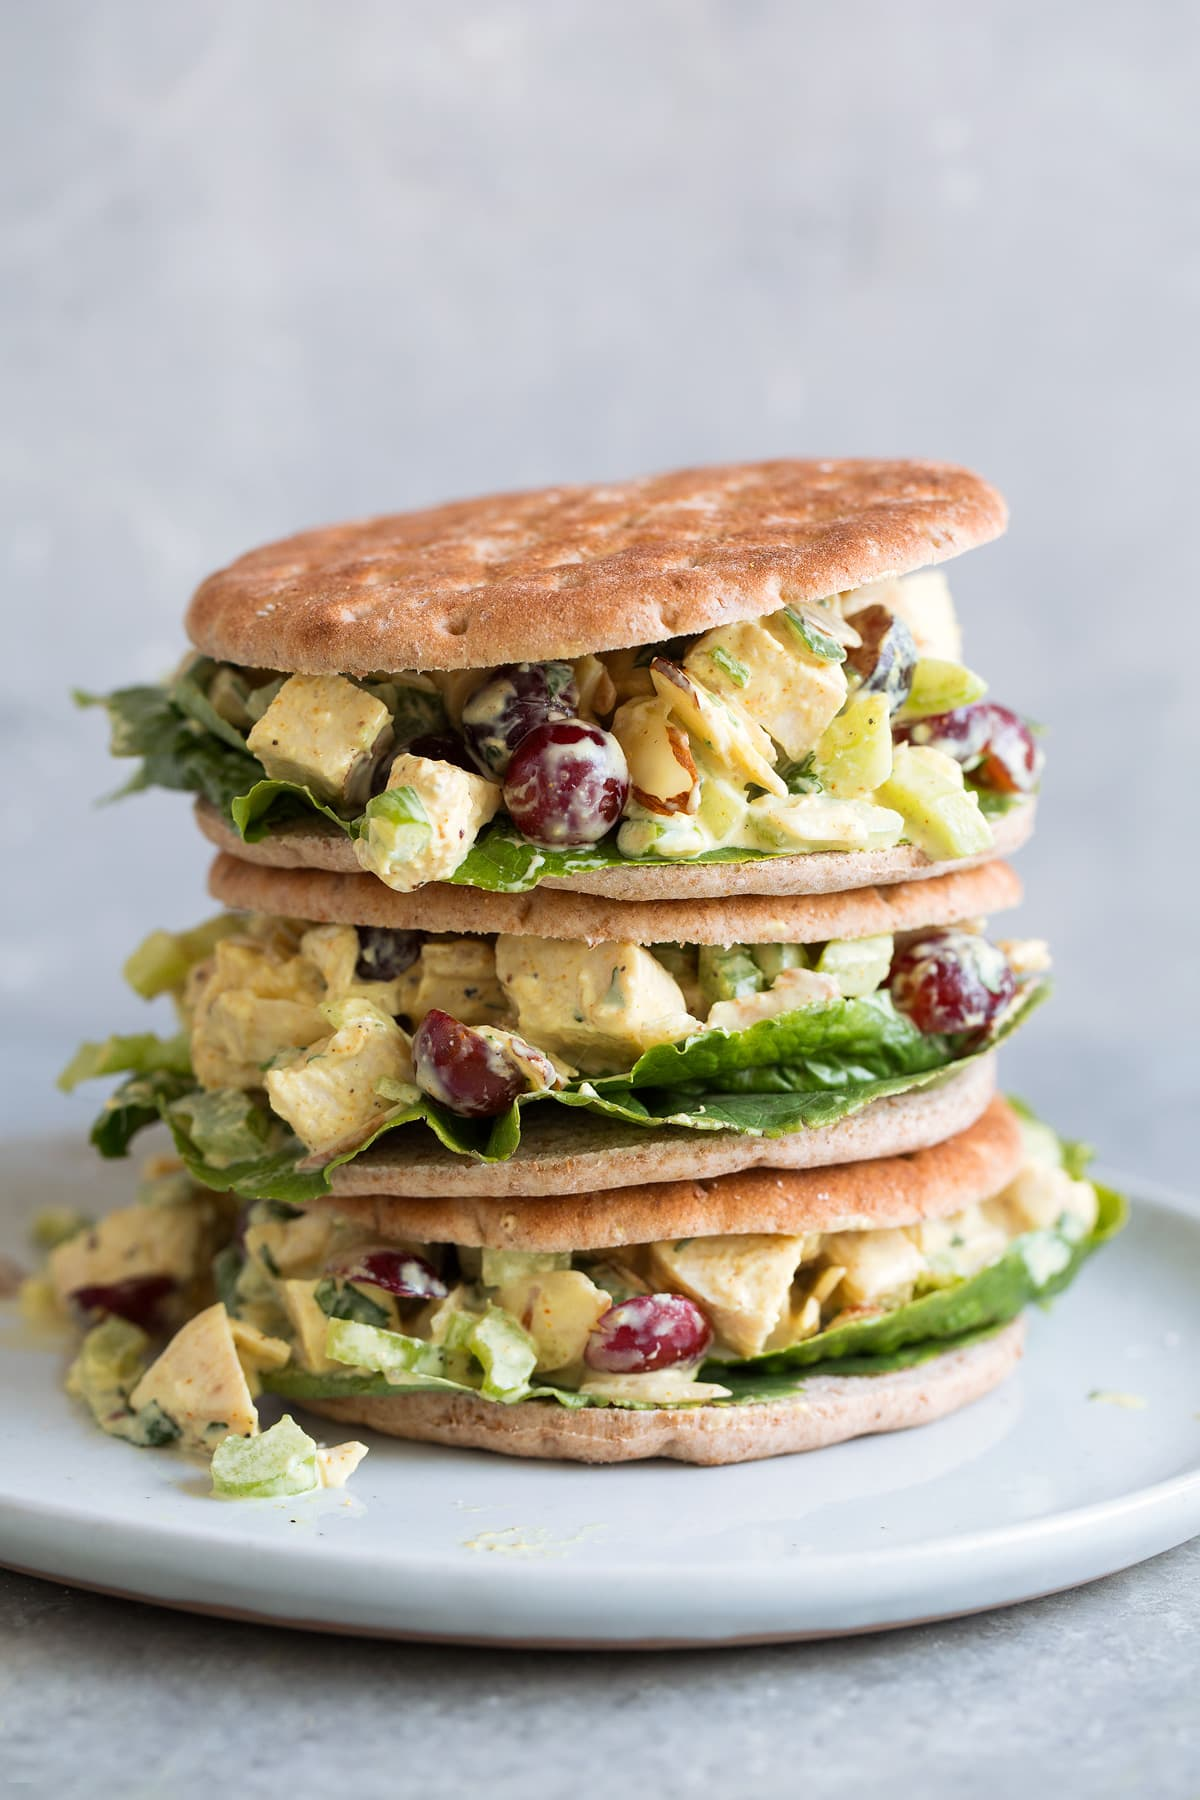 Curry Chicken Salad sandwiches stacked on a white plate